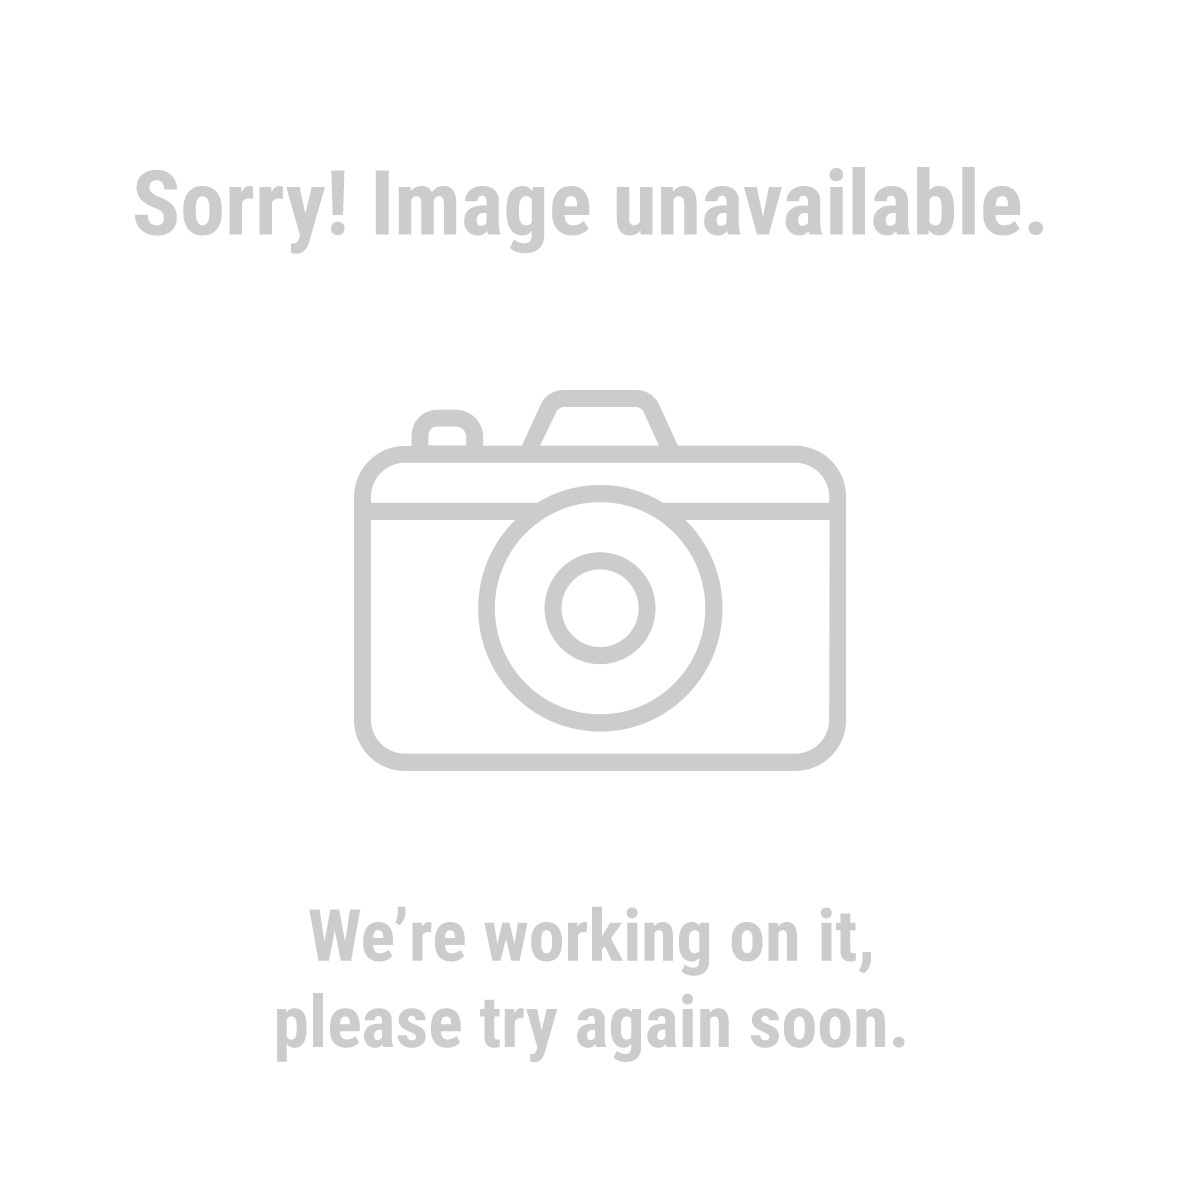 Pacific Hydrostar 62579 6.5 HP 212cc 2 in. Gas Engine Clear Water Pump 9540 (GPH)